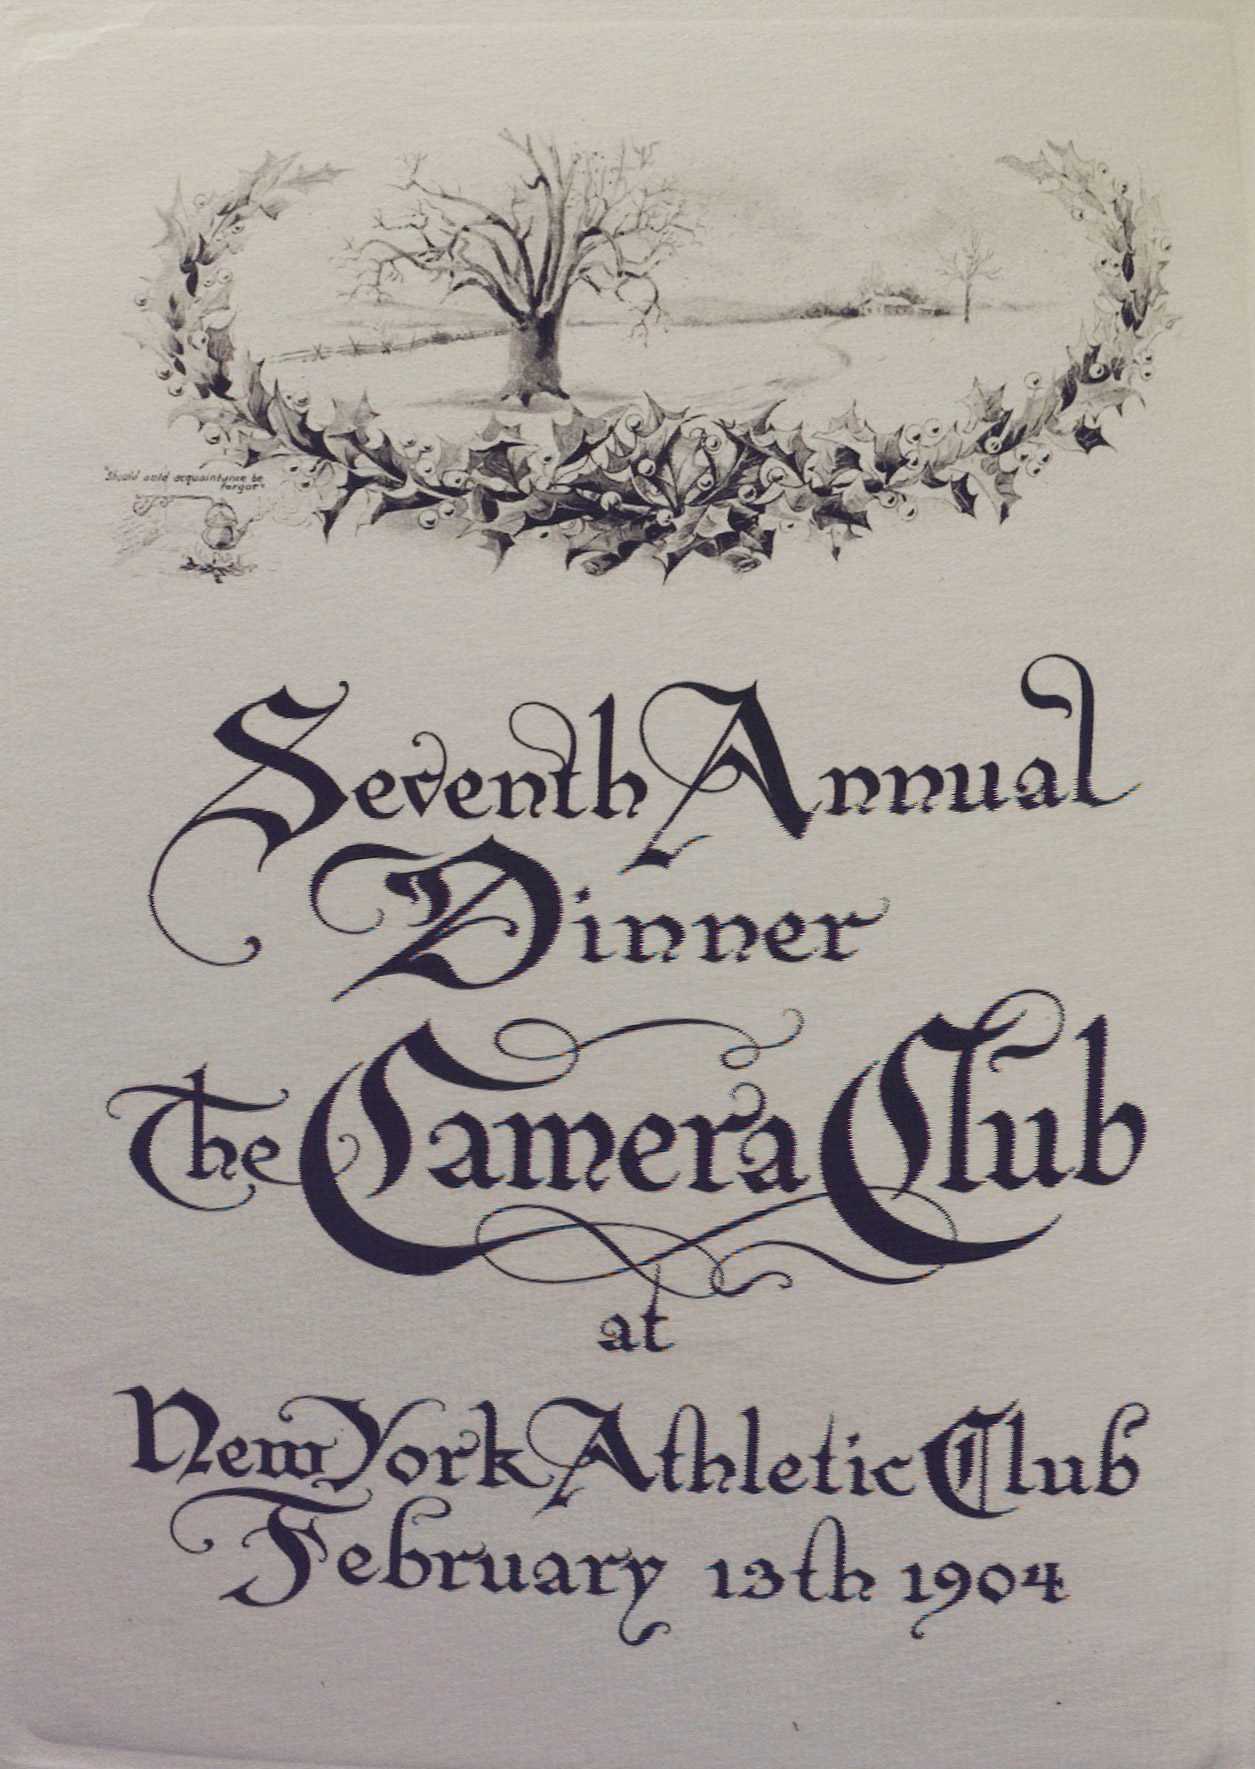 The Seventh Annual Dinner, The Camera Club. Inside menu left page.*